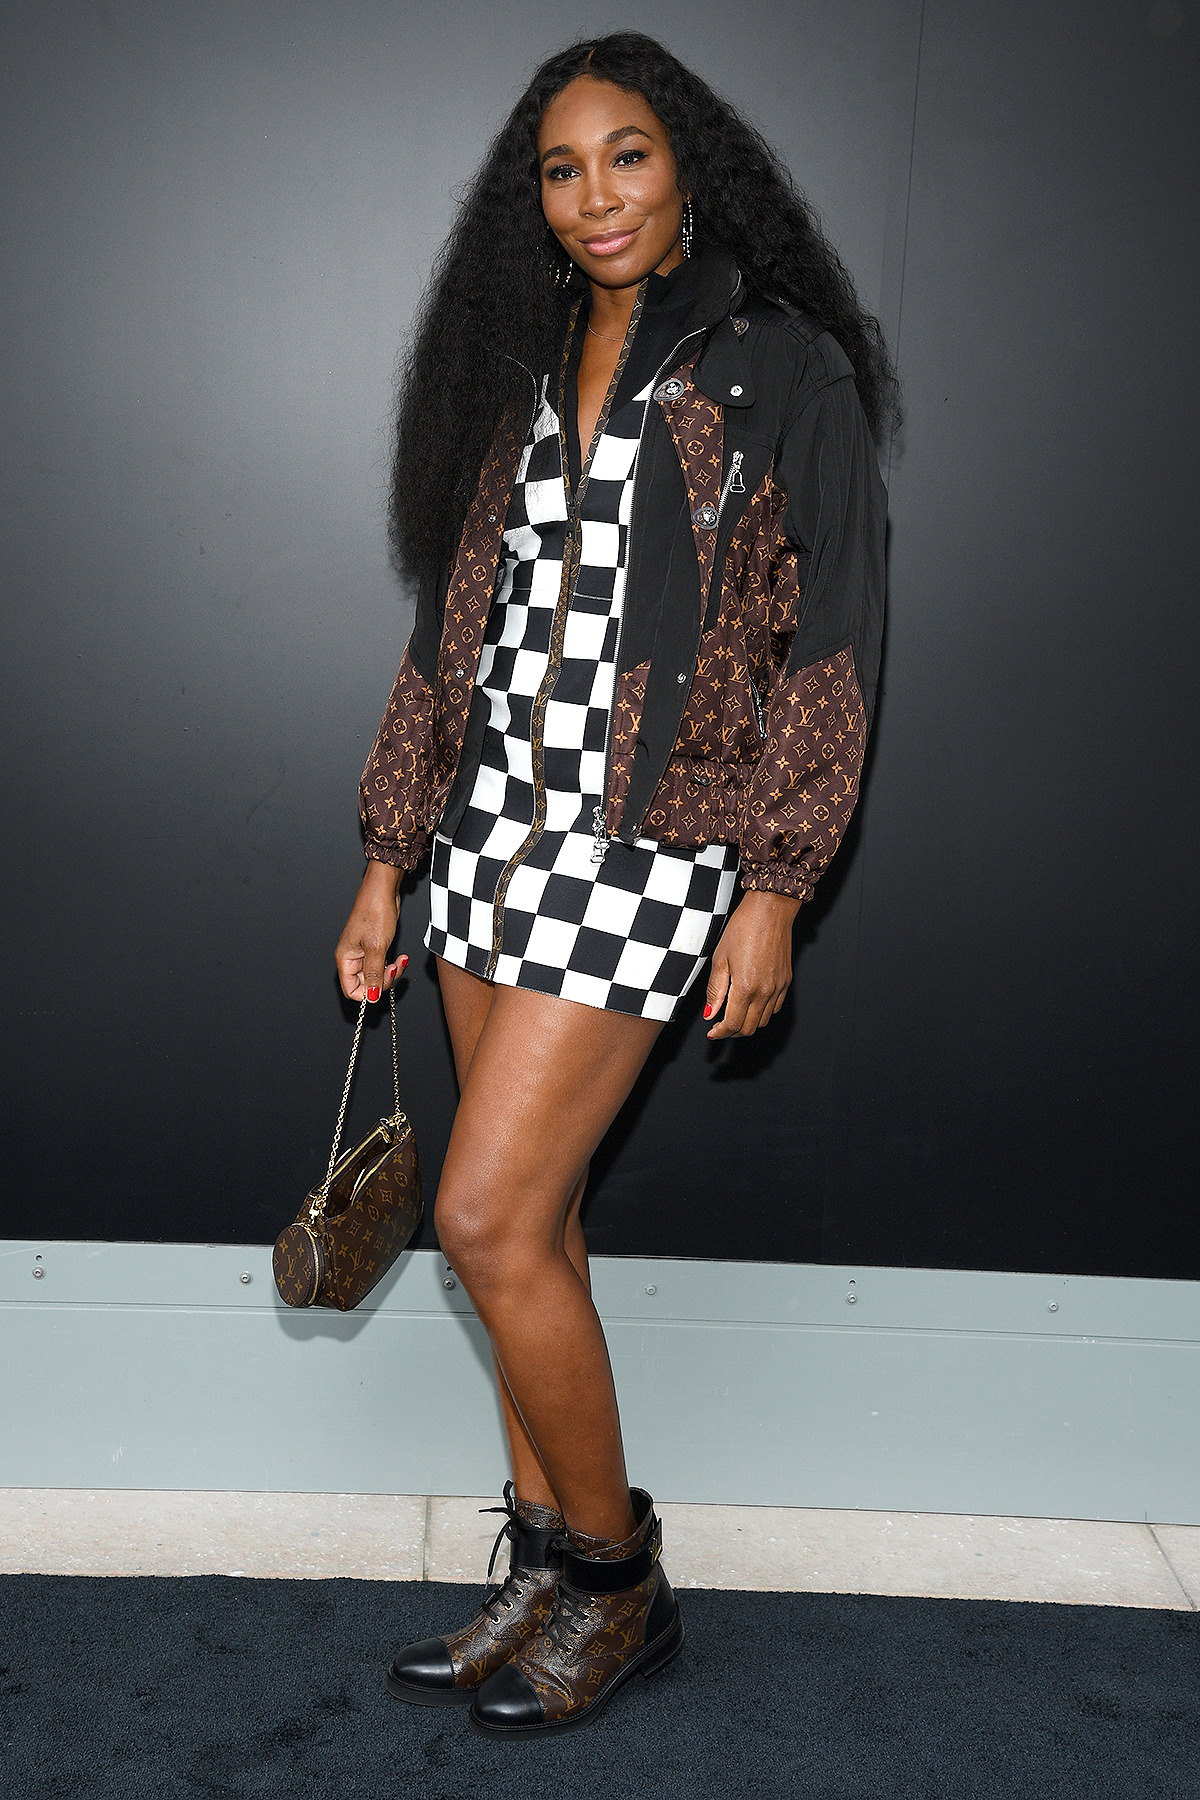 Venus Williams attends the Louis Vuitton Womenswear Spring/Summer 2021 show as part of Paris Fashion Week on October 06, 2020 in Paris, France.